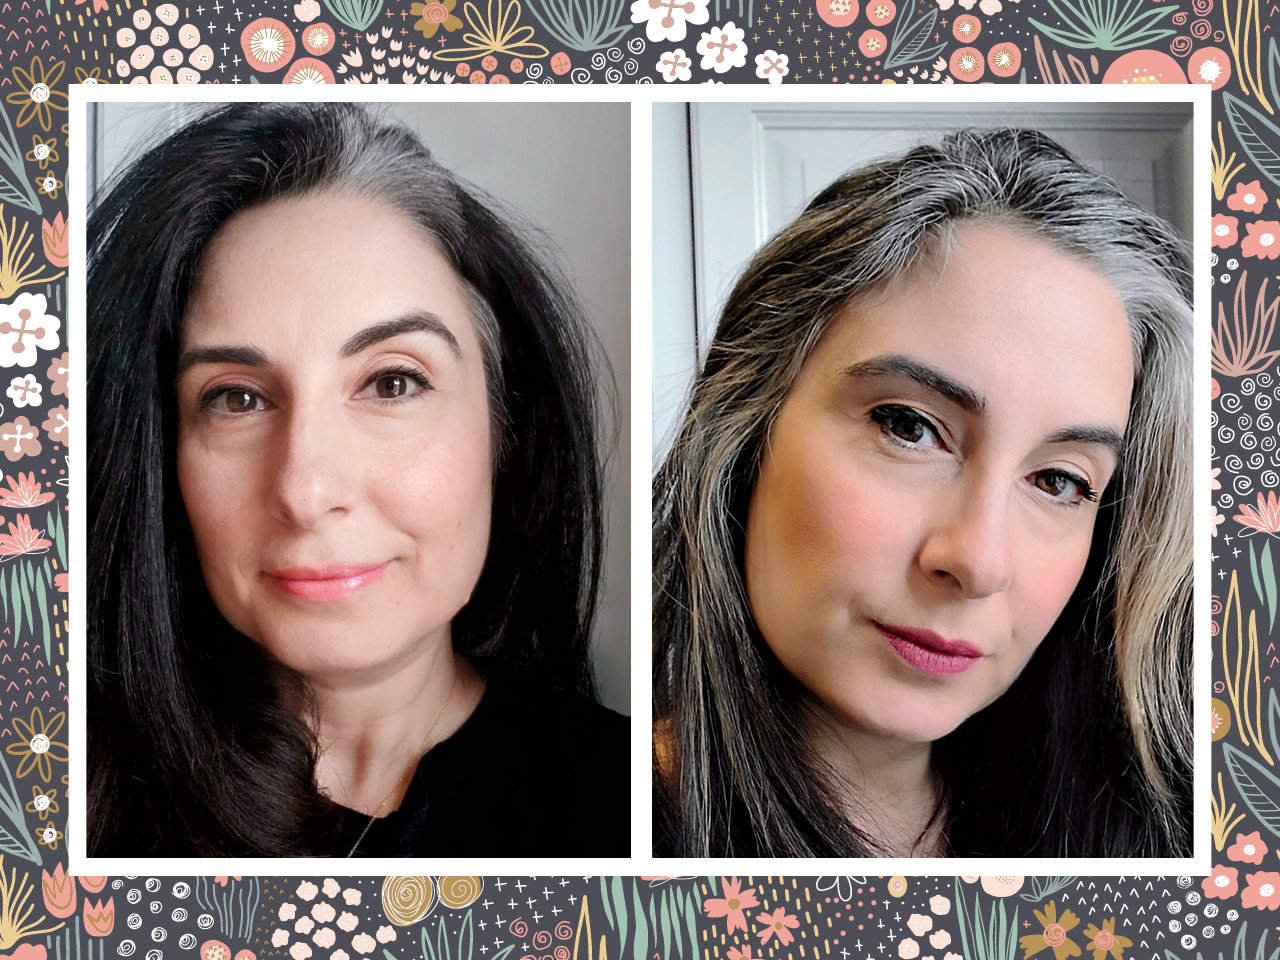 Two photos of the same woman with hair and a grey streak, in the right photo the grey streak is bigger